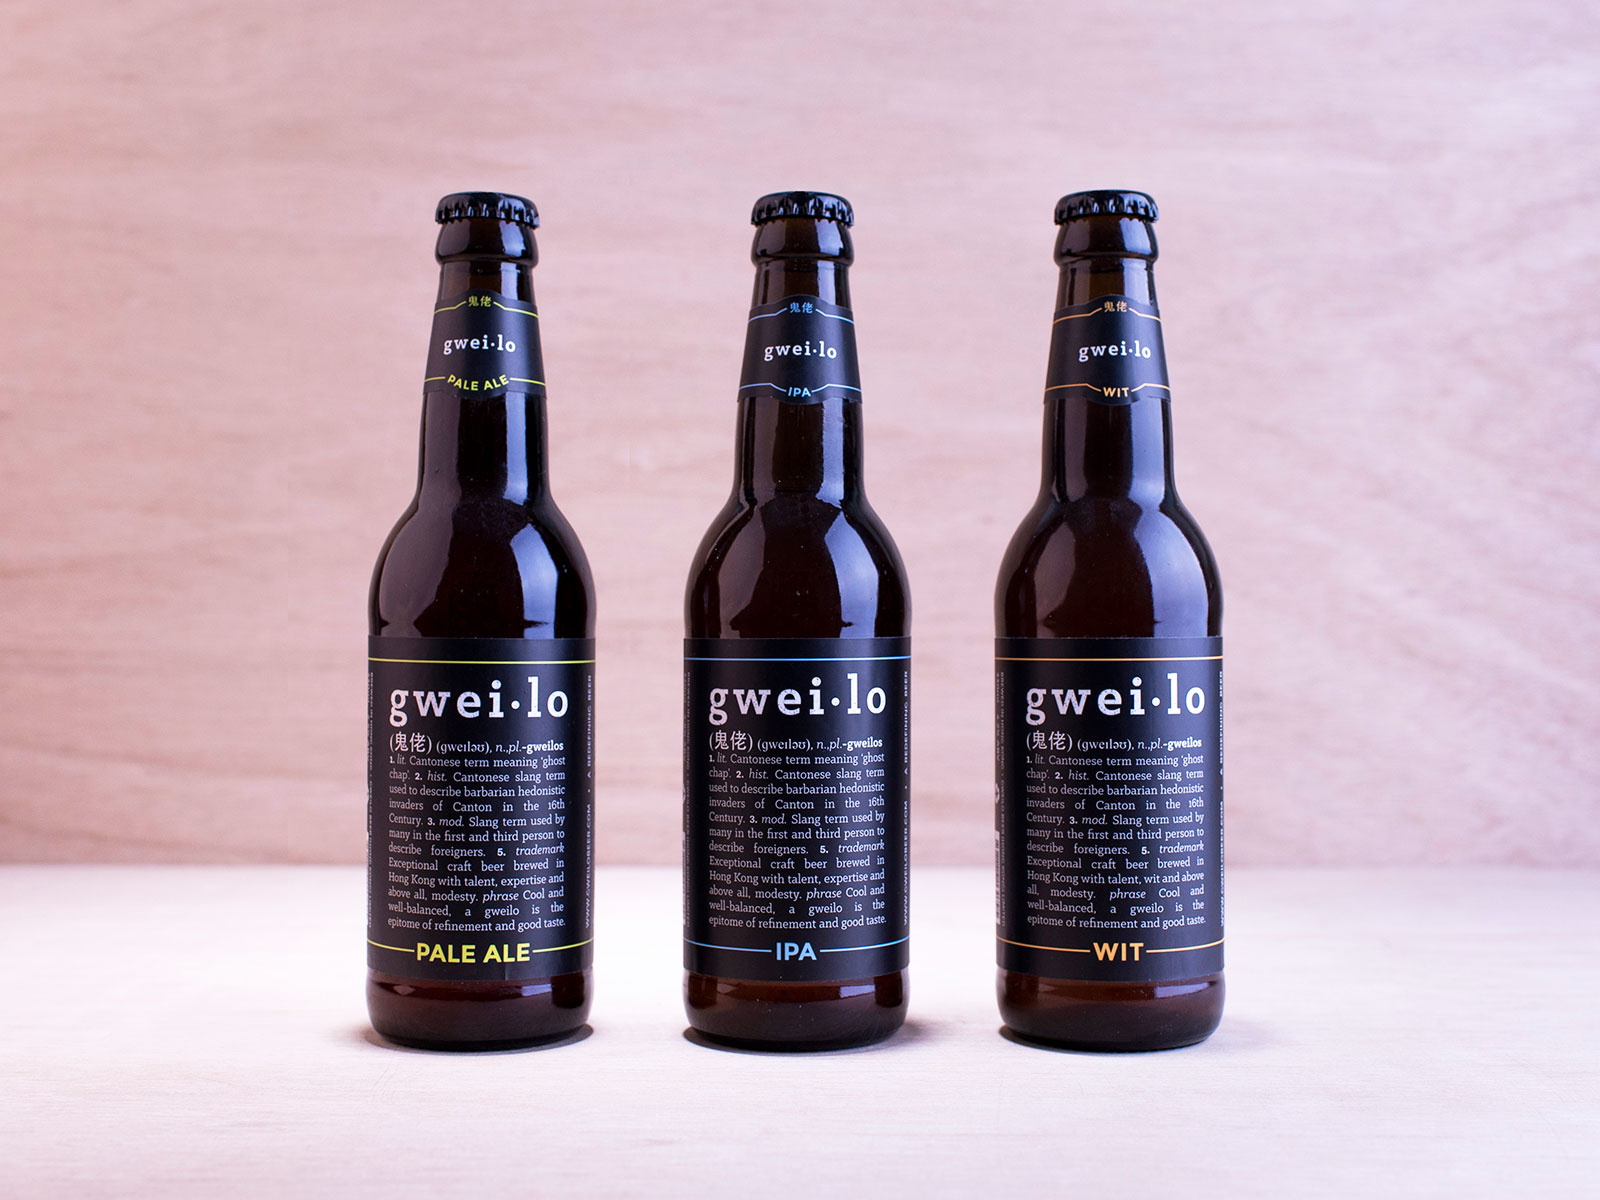 New Largest Craft Brewery Set to Open in Hong Kong